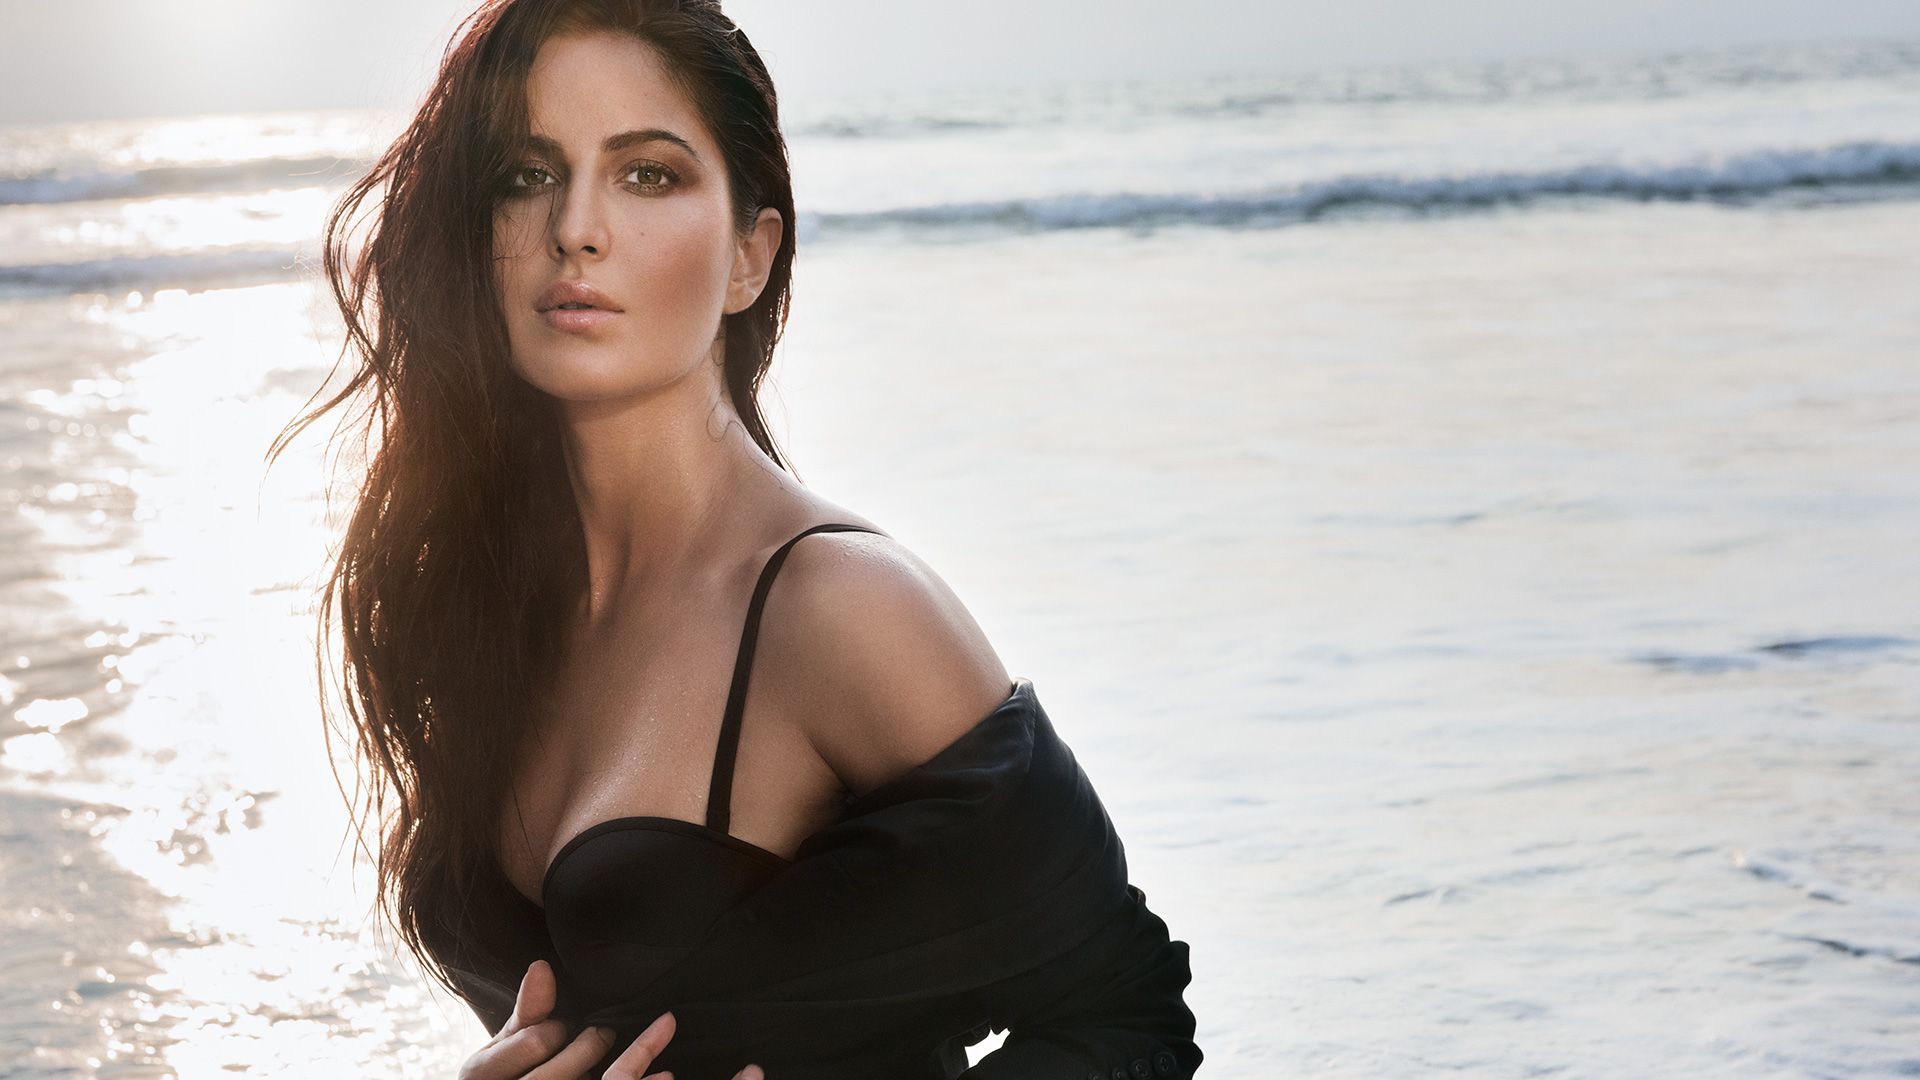 Katrina Kaif Latest 2016 Hd Indian Celebrities 4k Wallpapers